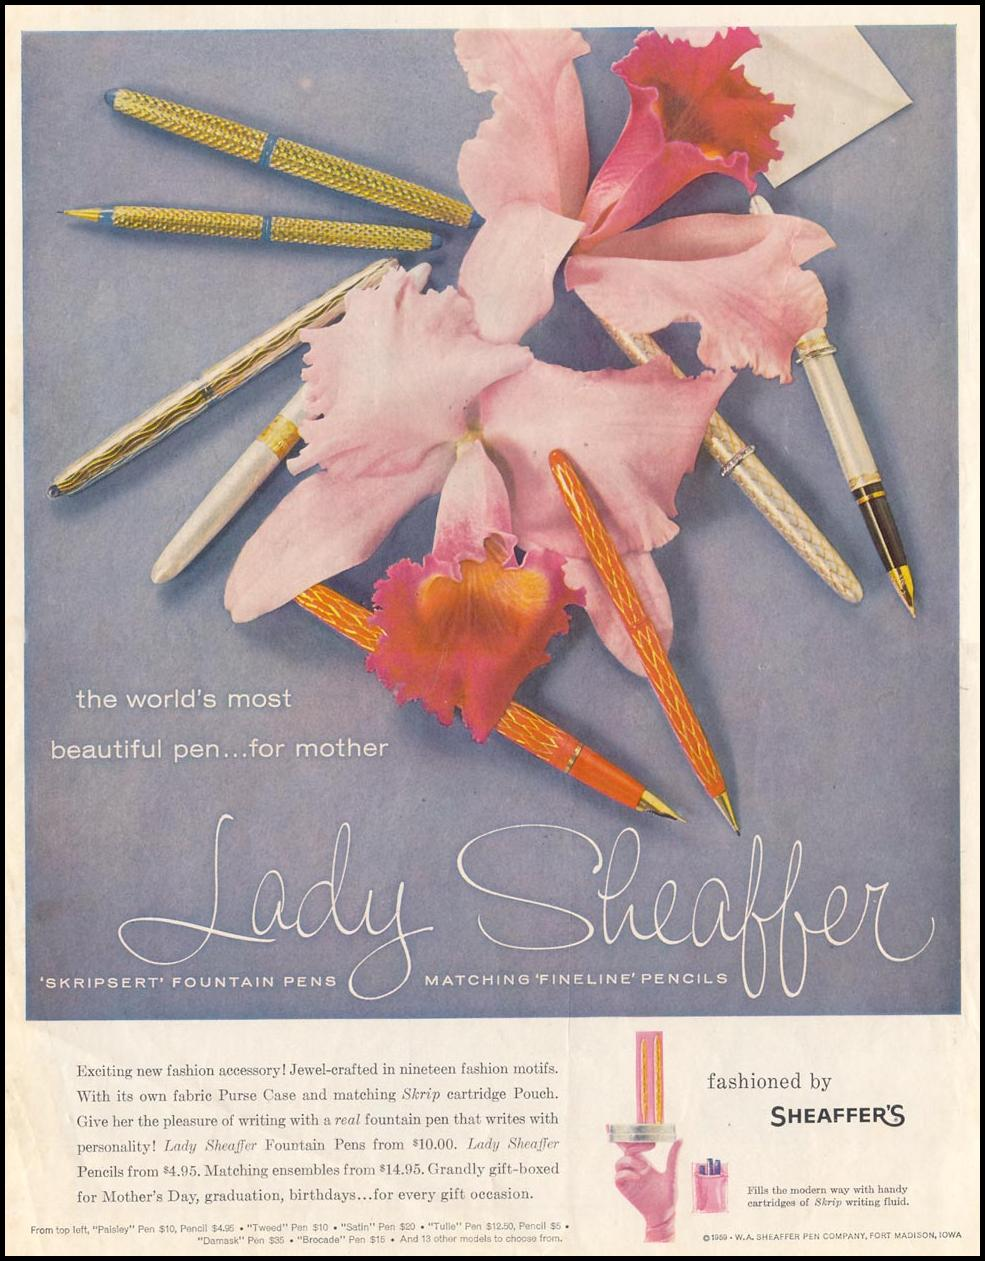 LADY SHEAFFER FOUNTAIN PENS AND PENCILS SATURDAY EVENING POST 05/02/1959 INSIDE FRONT